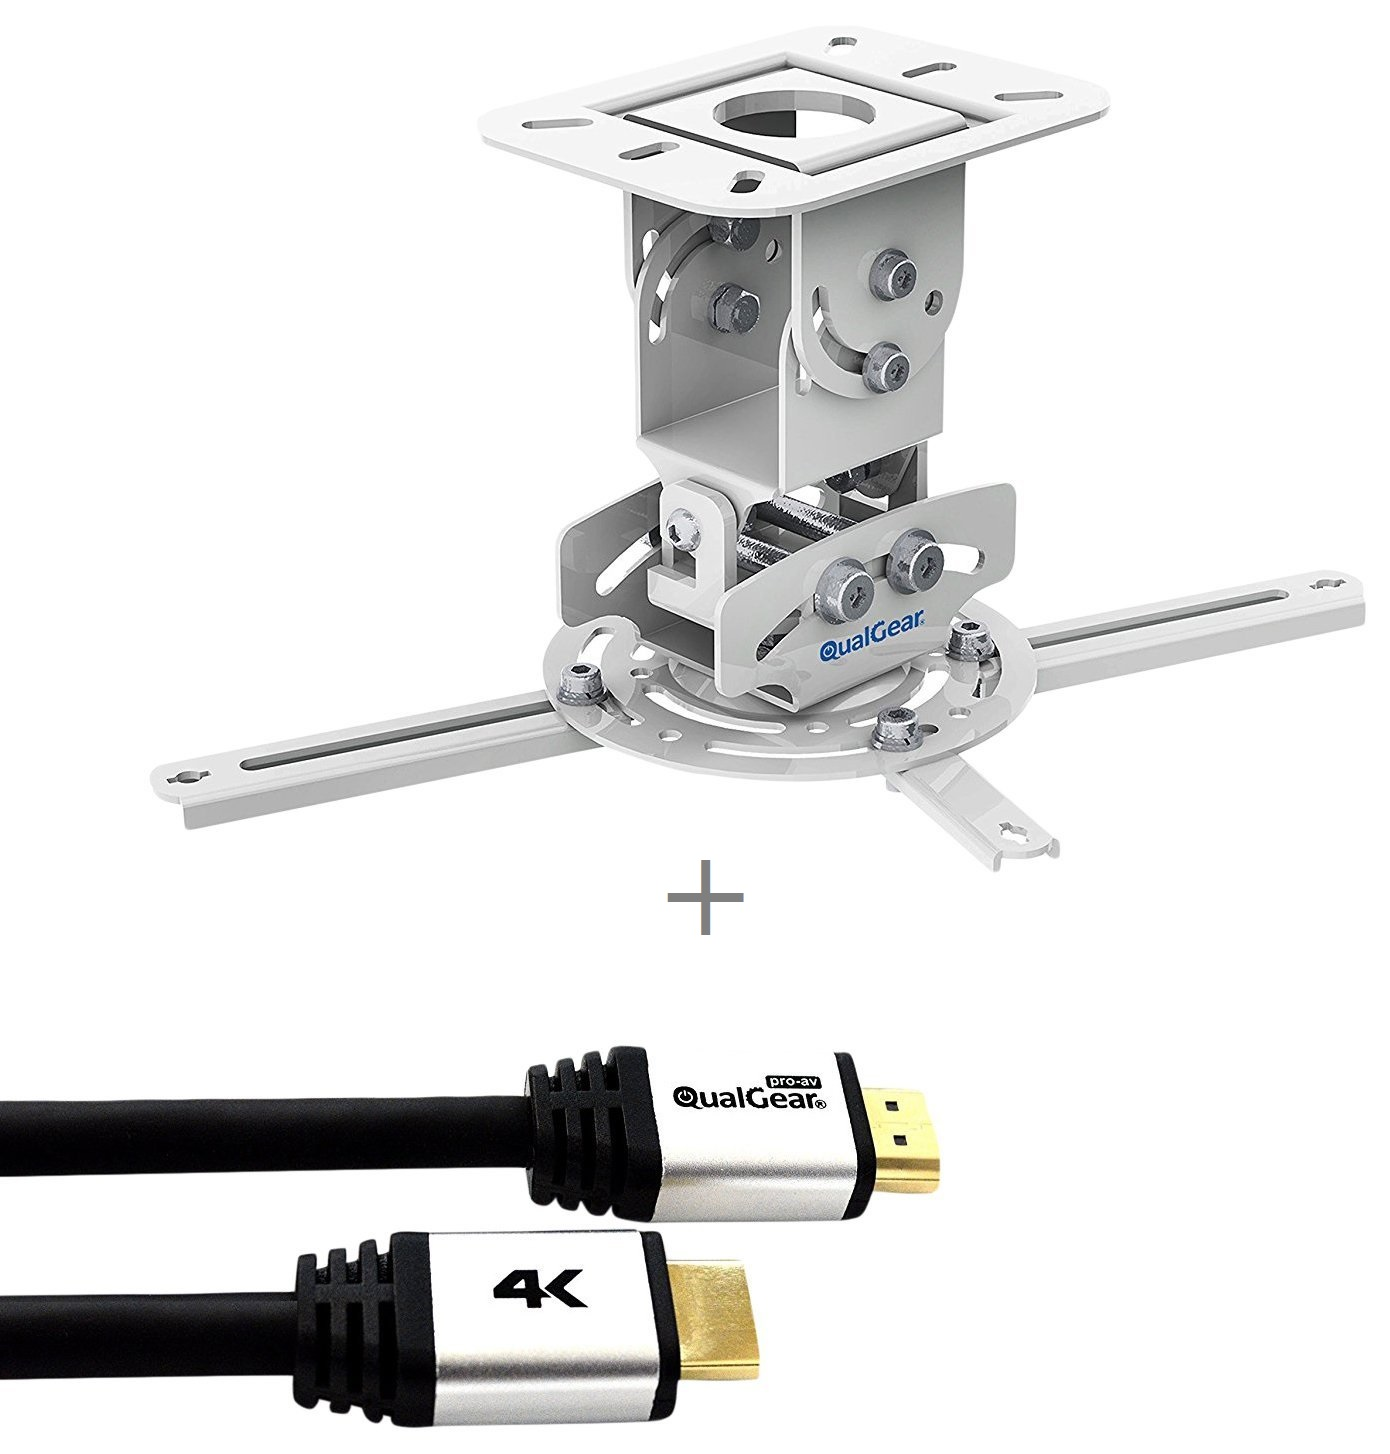 QualGear PRB-717-WHT-25FT Projector Ceiling Mount Bundle with HDMI Type A Male to Type A Male Cable, 25' Black